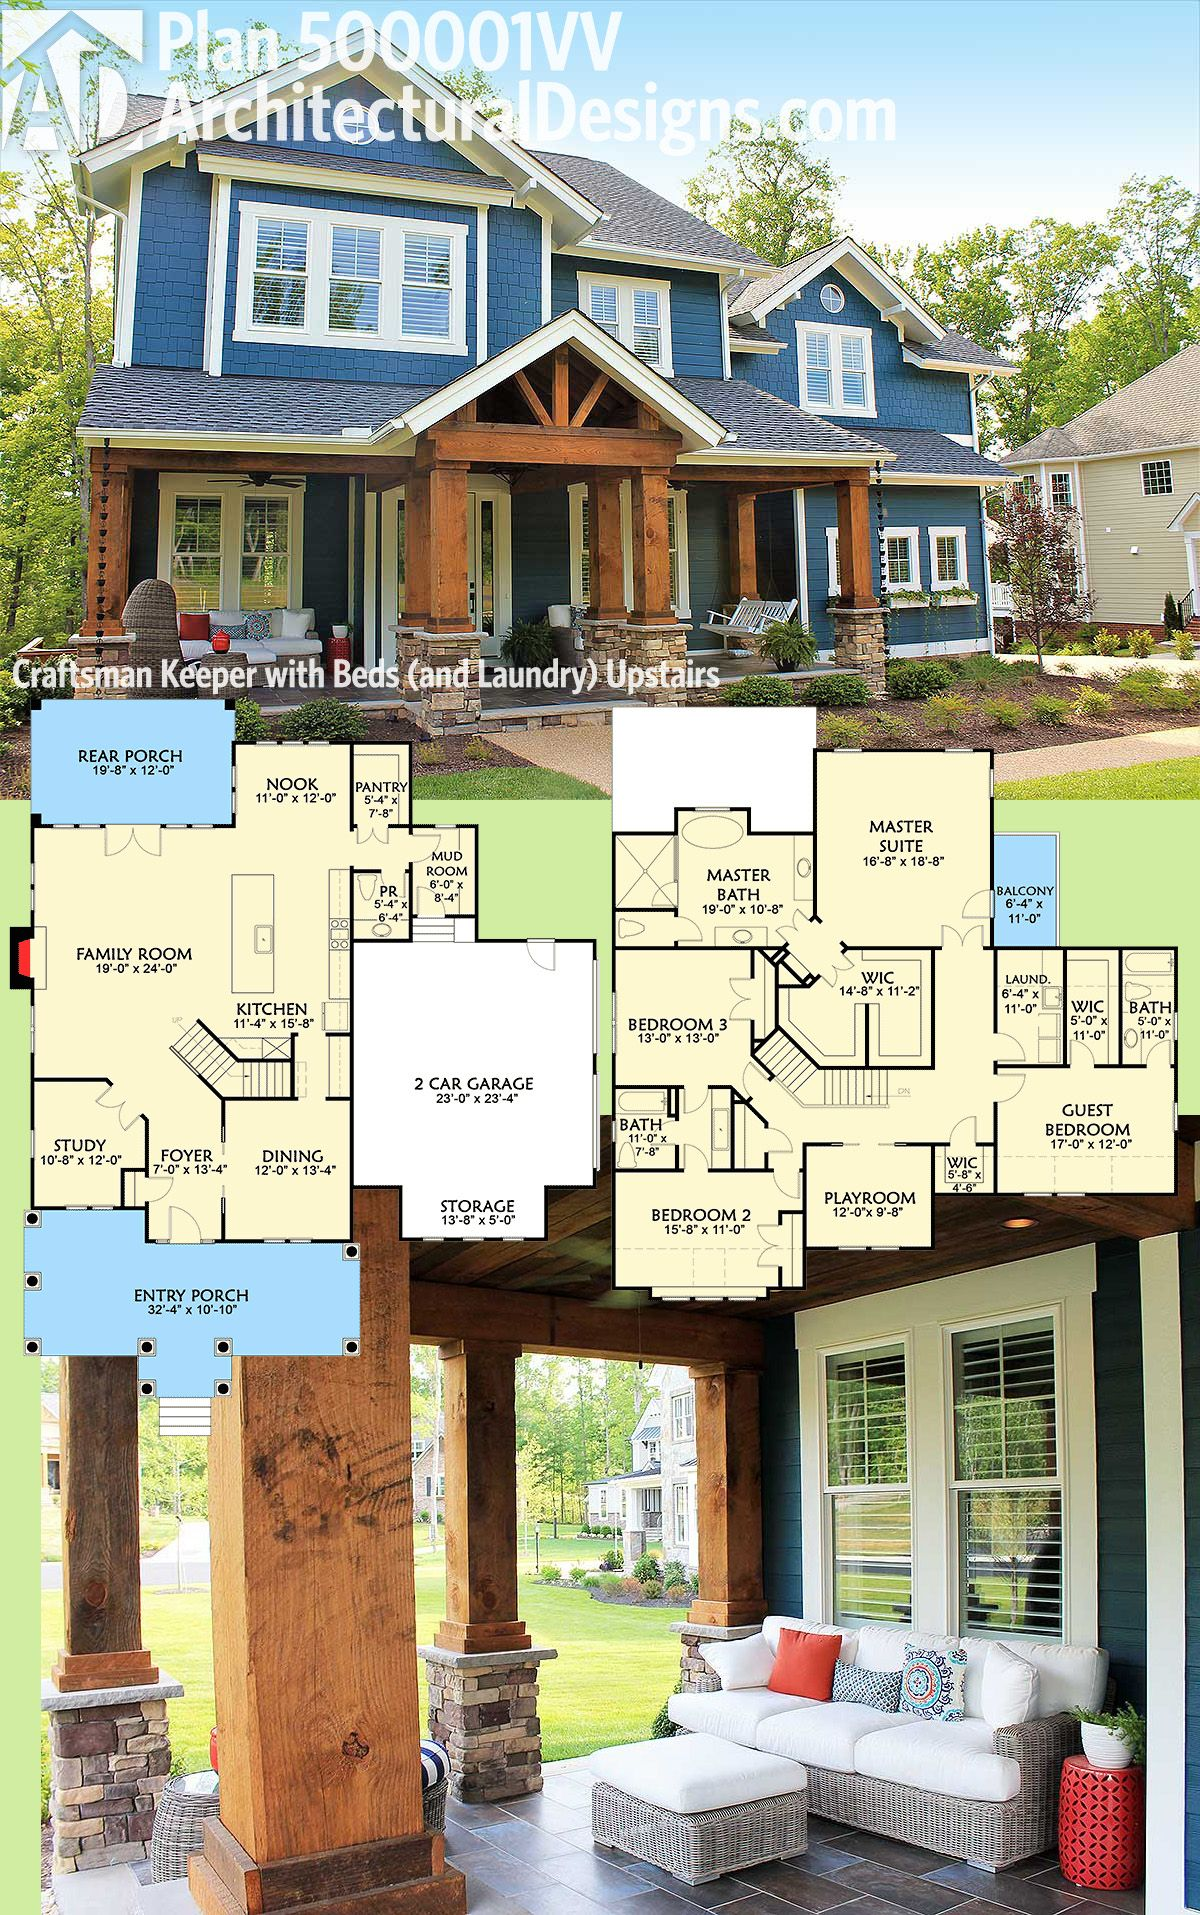 Plan 500001vv craftsman keeper with beds and laundry for Upstairs design